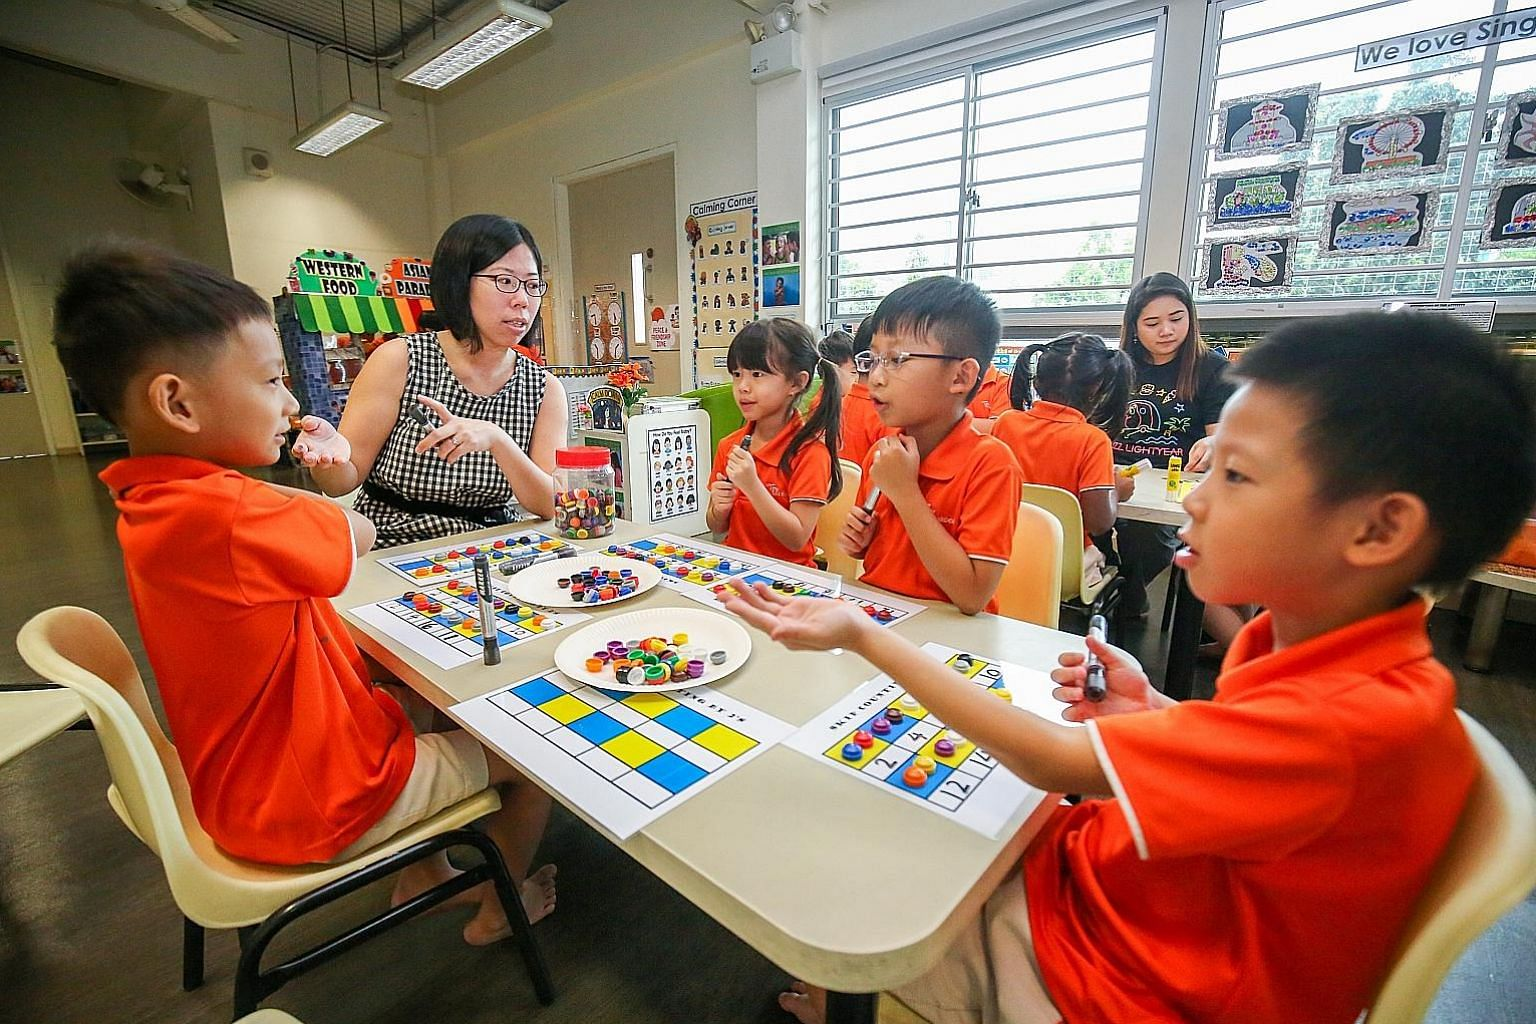 The changes introduced for children in Singapore this year have been both deep and broad. Legislative amendments have been made to ensure that all have the right to grow up safe and well.